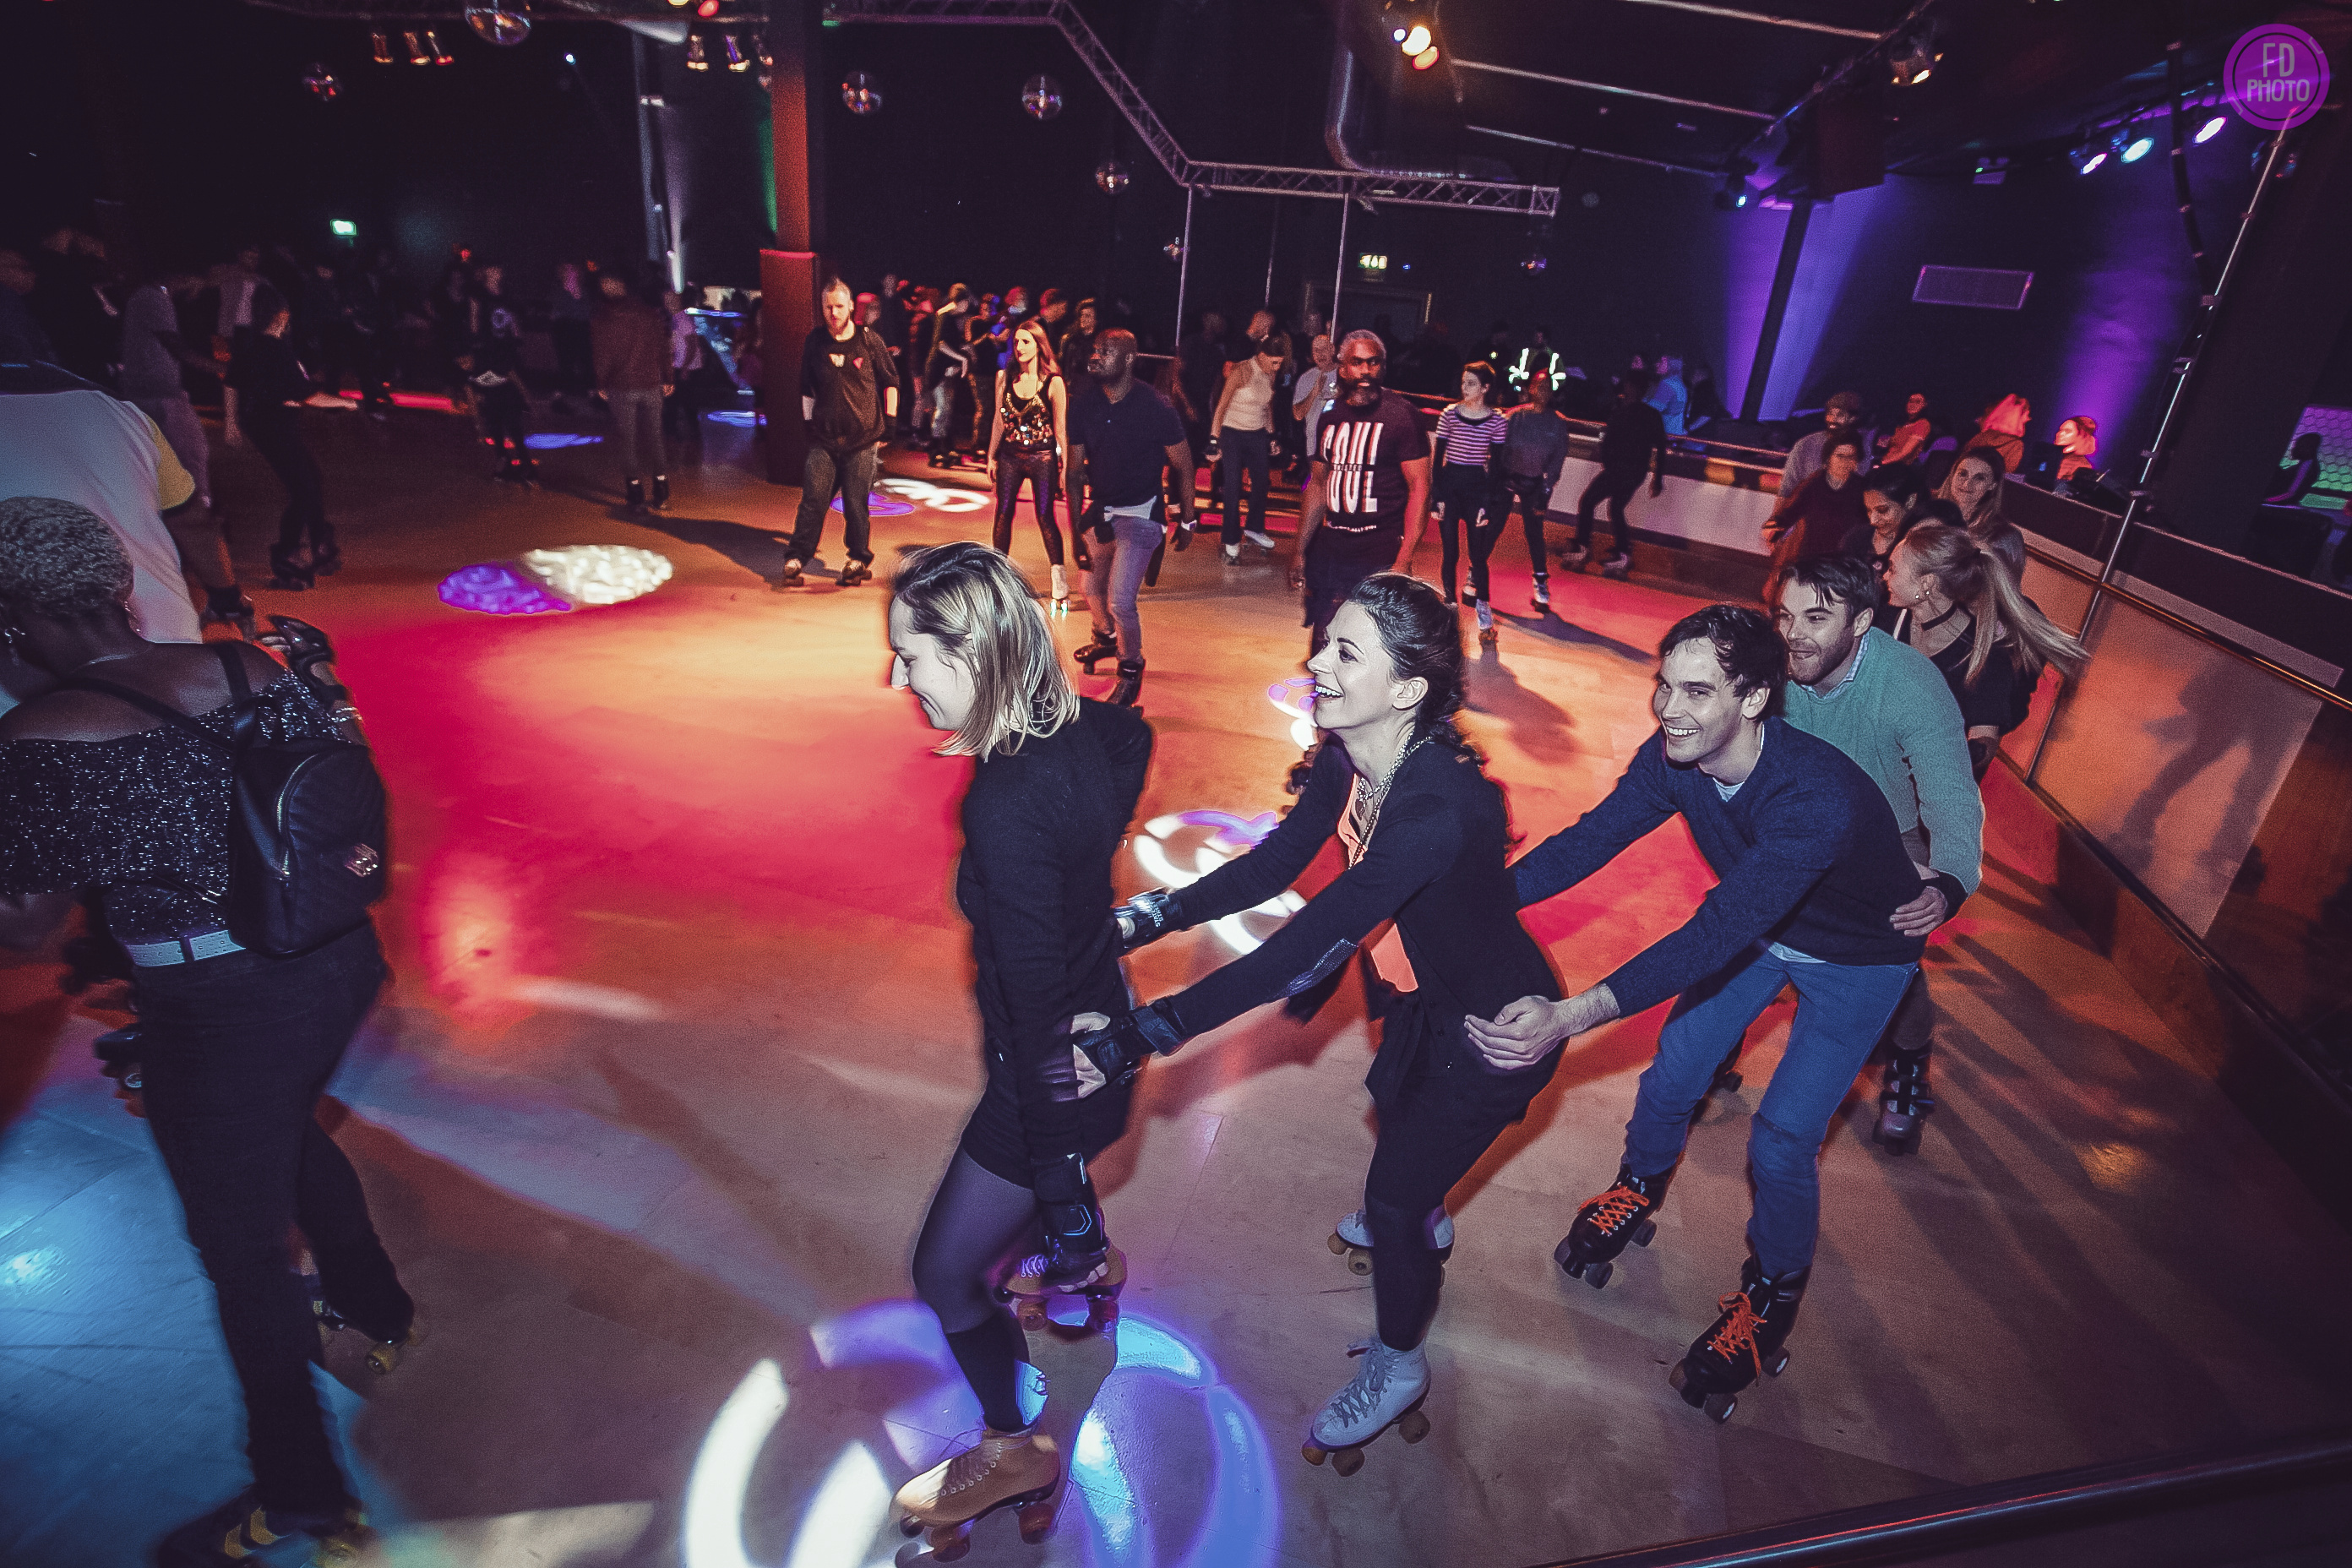 Unleash your inner dancing queen at these London discos with a difference